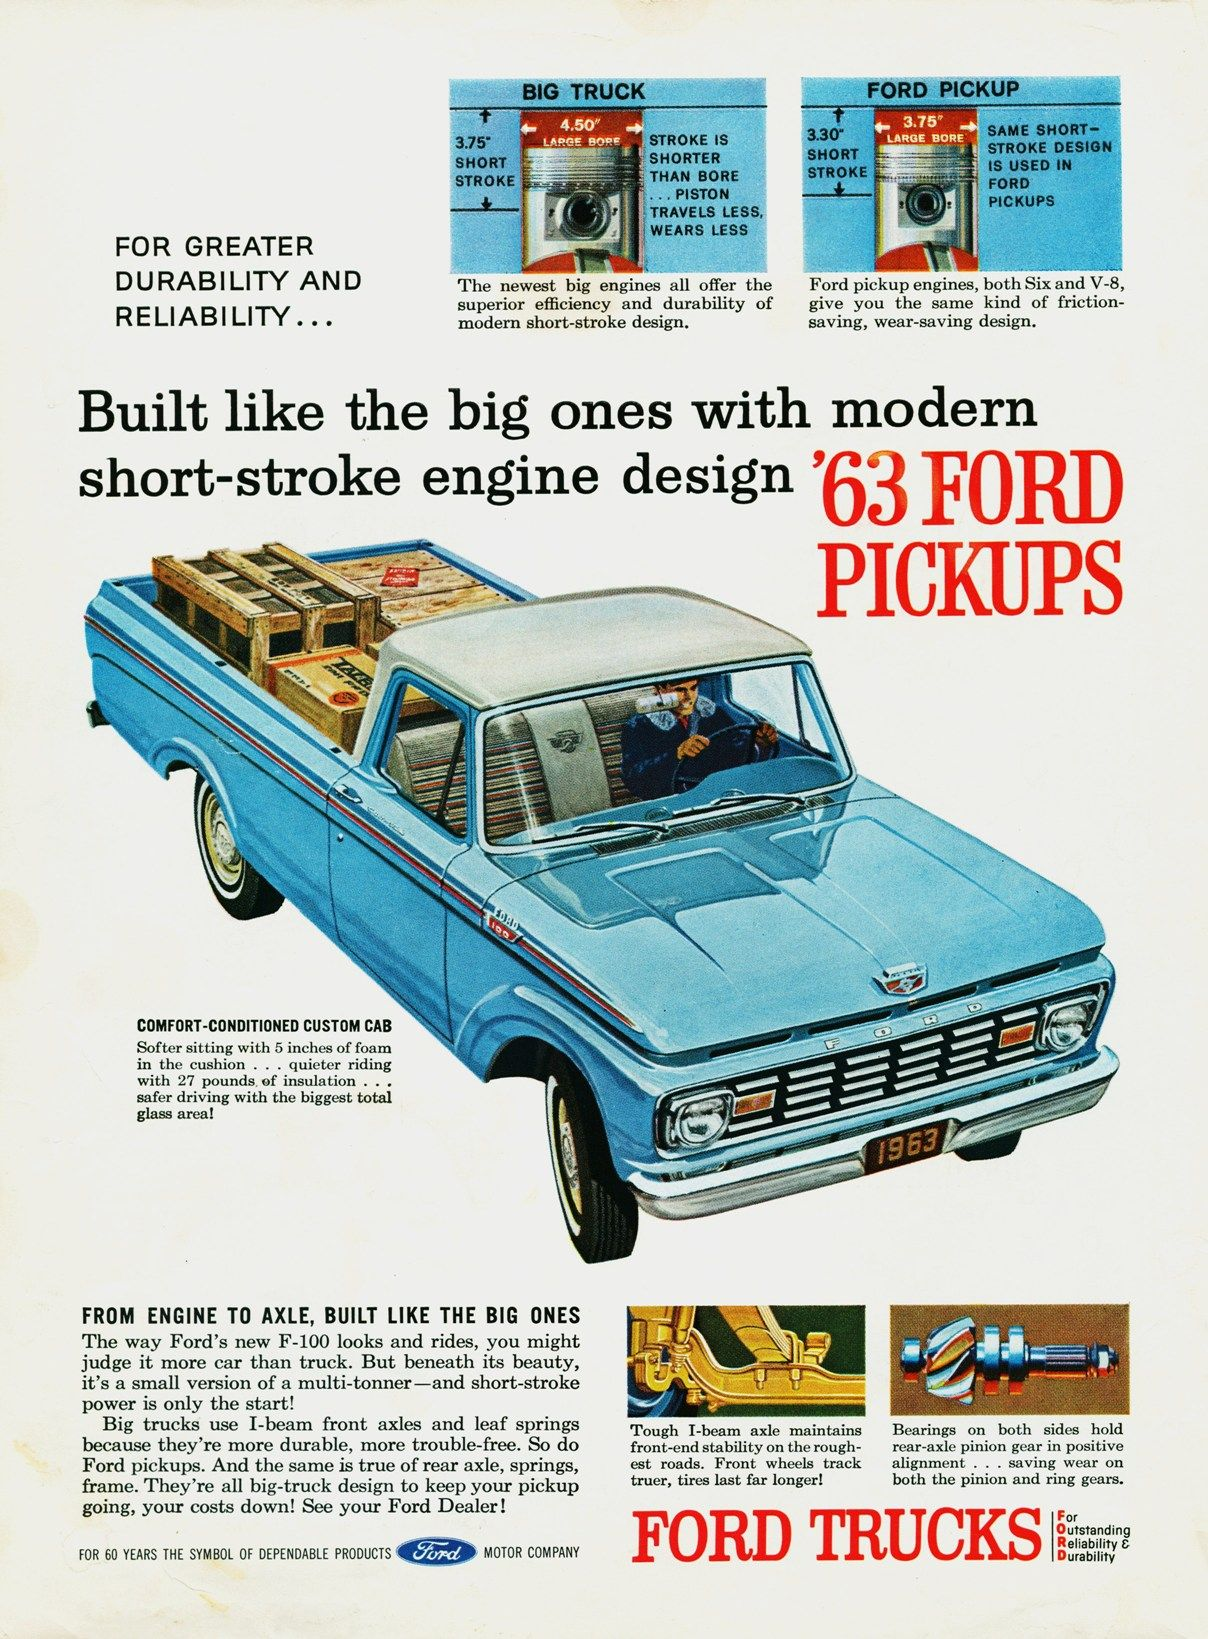 1963 Ford Truck Ad 01 Ford Truck Ads Pinterest Ford Trucks